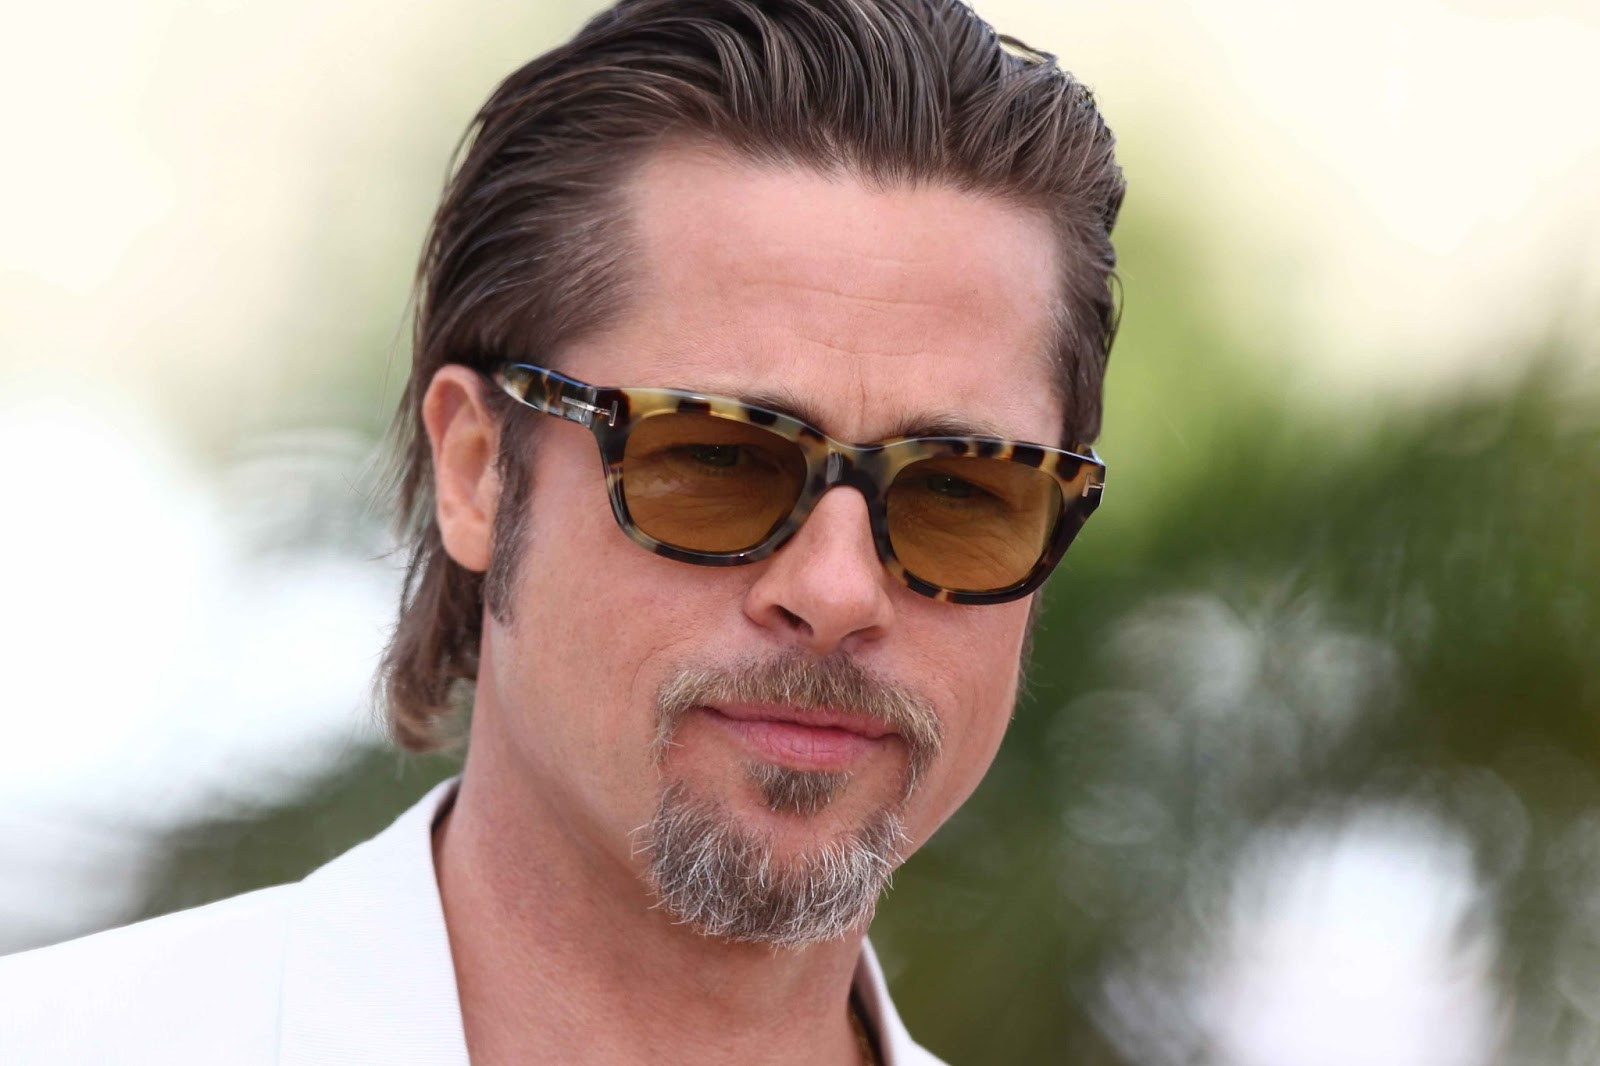 Brad Pitt Cool Hairstyle With Sunglasses Picture Gallery Latest Wallpapers High Definition